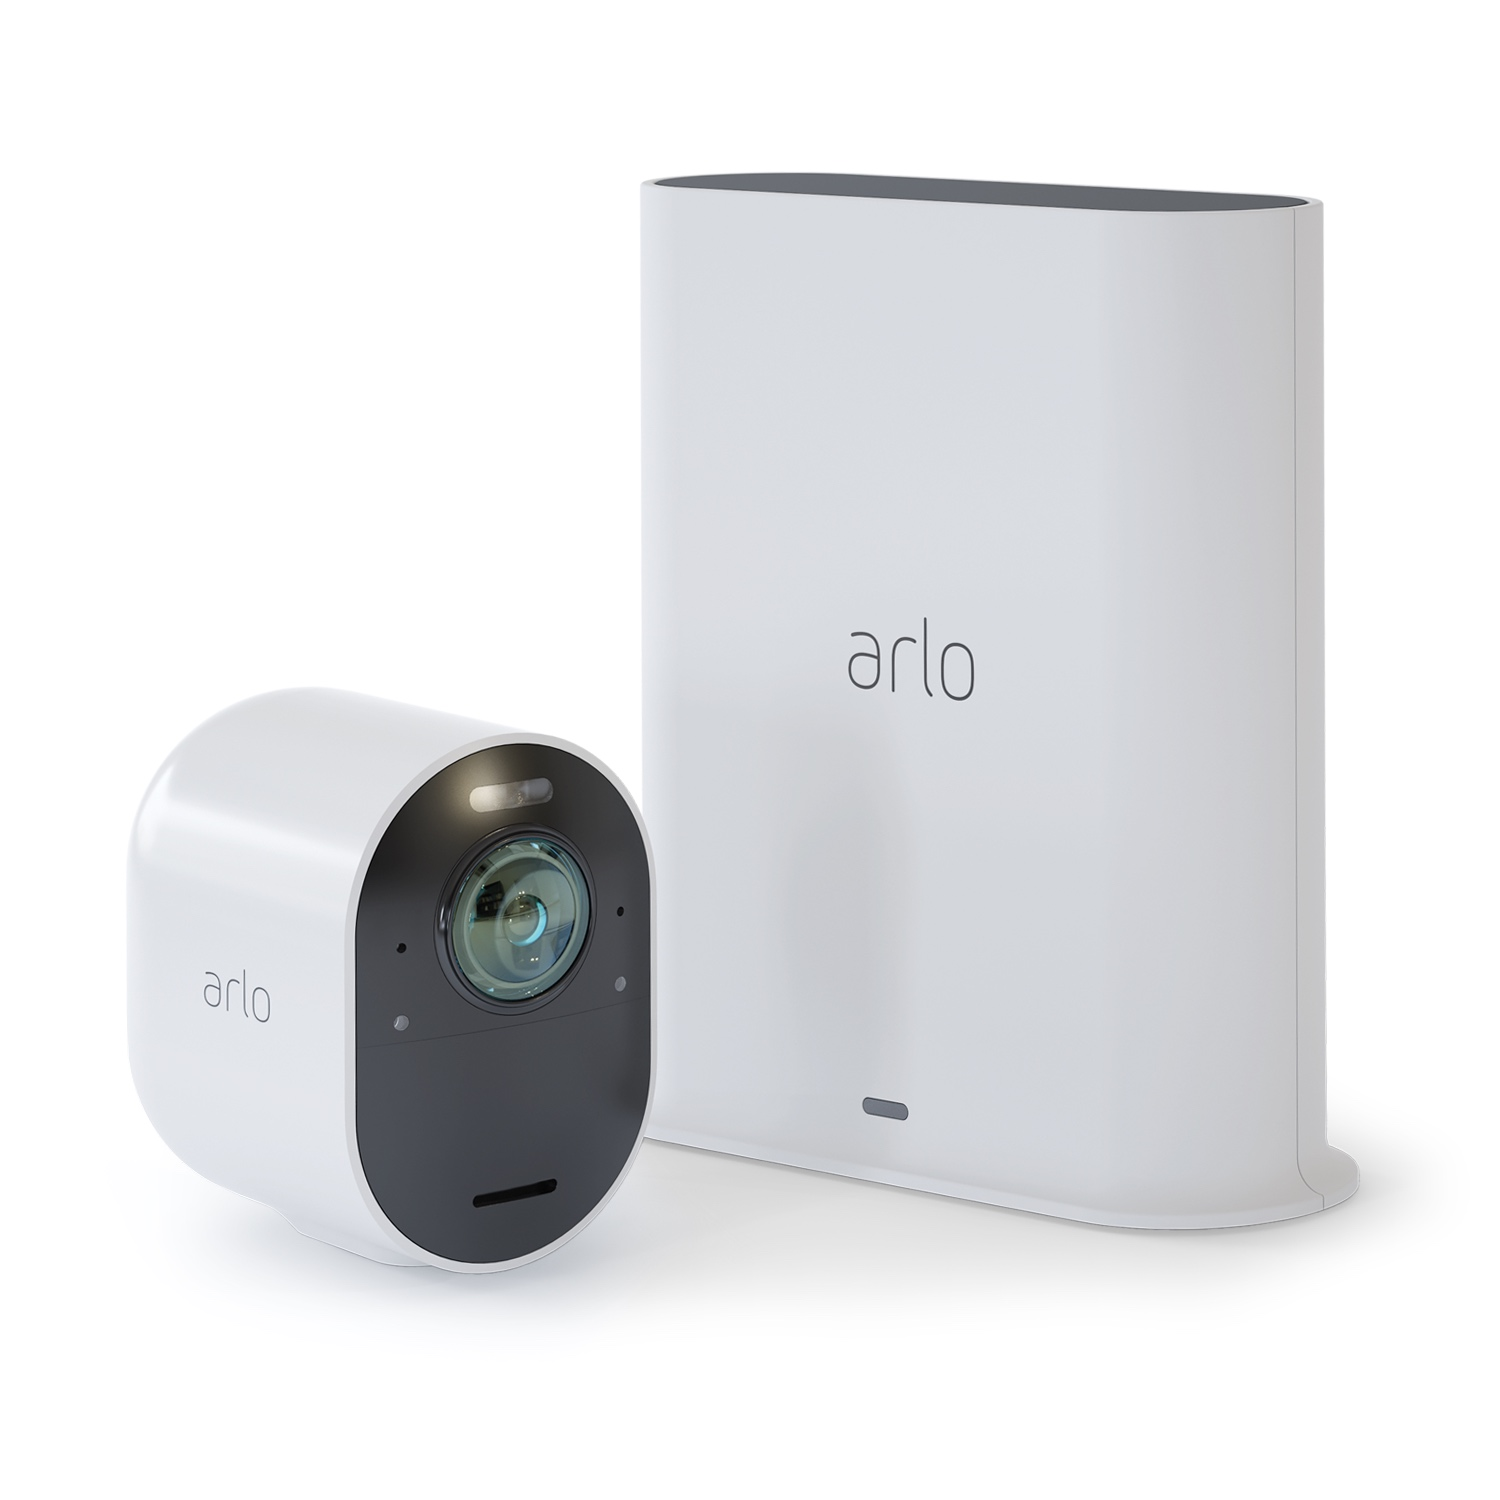 Homekit Compatible Hub Ces 2019 Arlo Unveils Homekit Enabled Ultra 4k Hdr Security